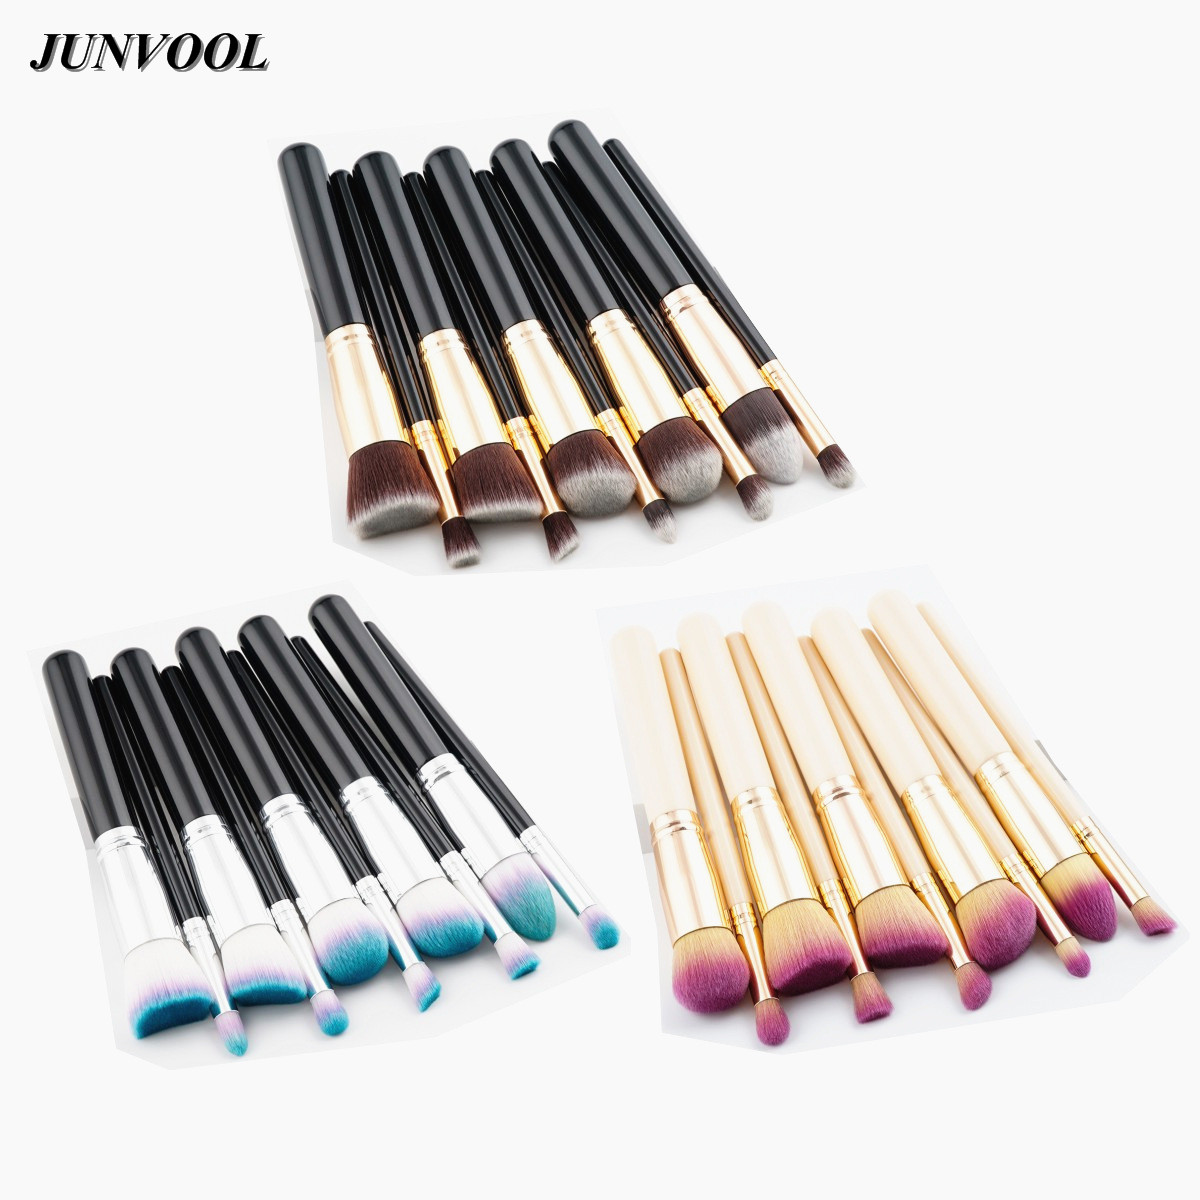 Gold Make Up Brush Set 10pcs Beauty Cosmetic Foundation Eye Eyebrow Shadow Blending Brushes for Makeup Tool Kit Professional DIY g073 professional makeup brush goat hair ebony handle make up eye shadow smudge brushes cosmetic tool eye shadow blending brush